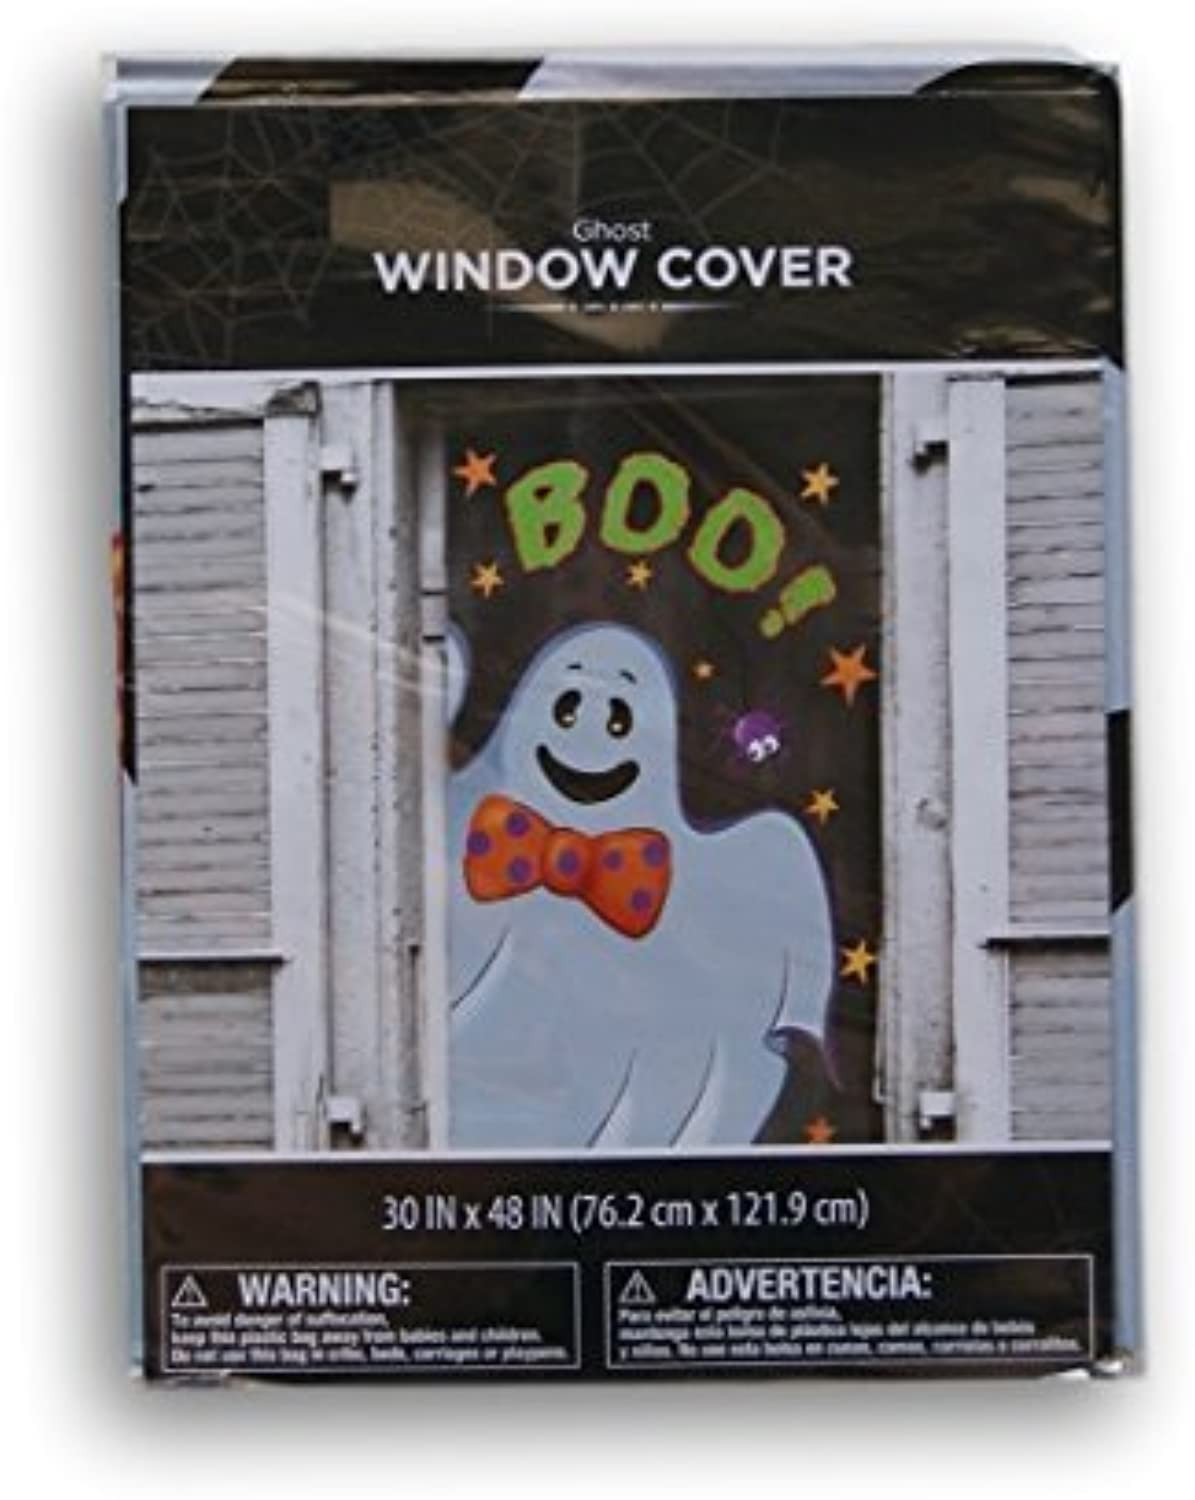 Halloween Spooky Ghost Window Cover  30'' x 48'' by Retail